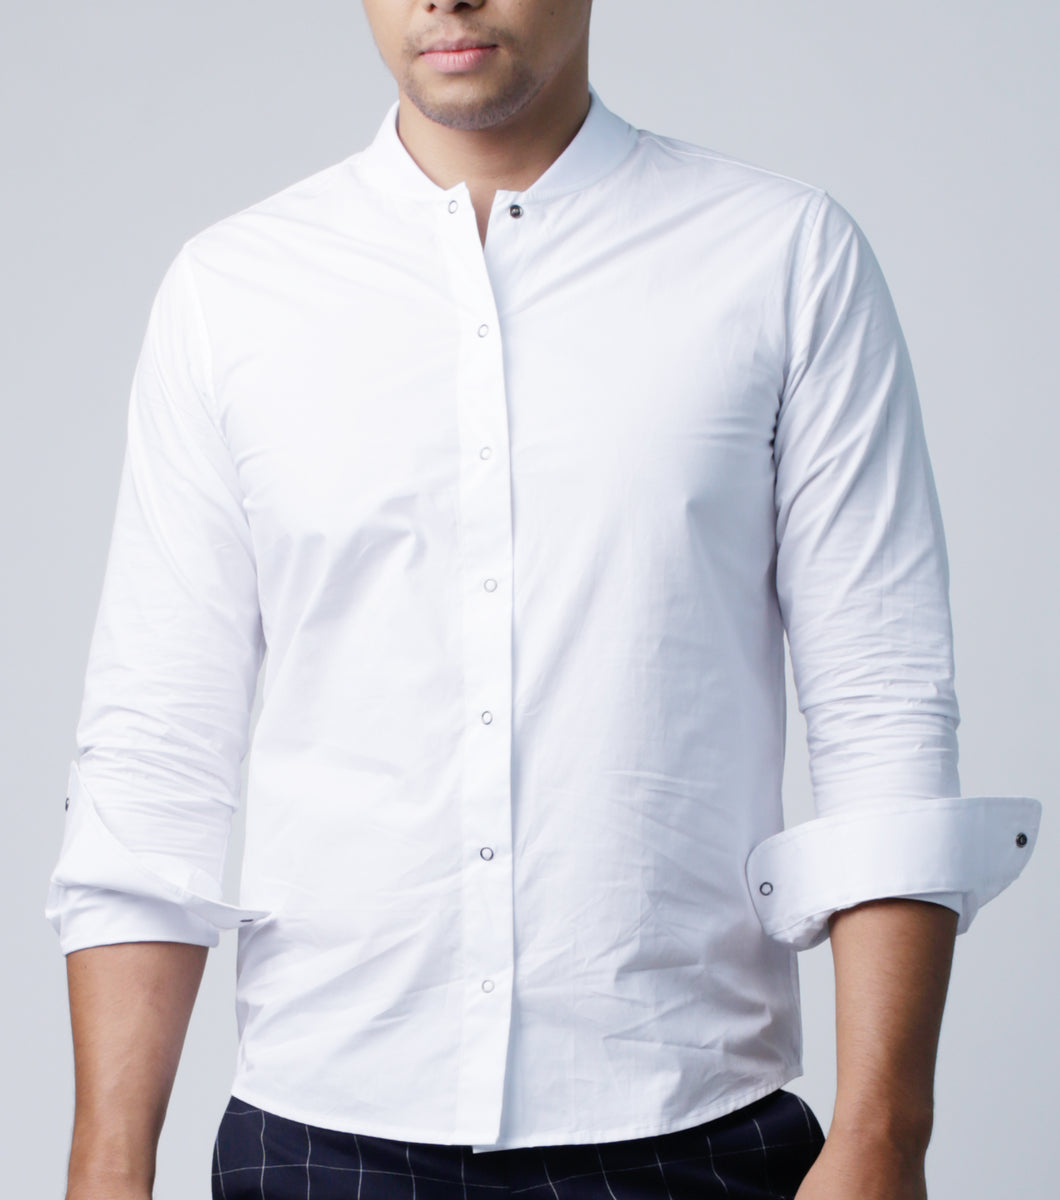 Levi Fine Cotton Long Sleeves